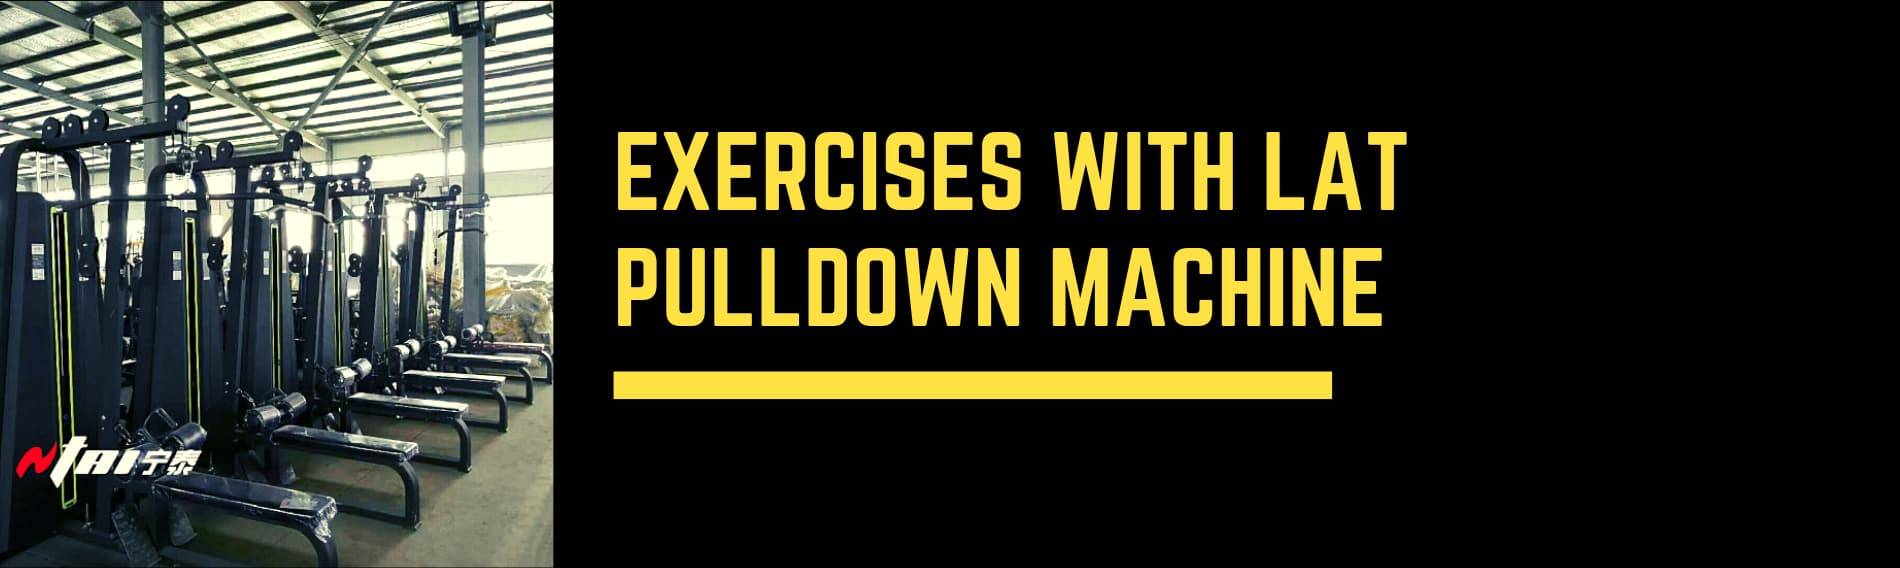 Exercises with Lat Pulldown Machine